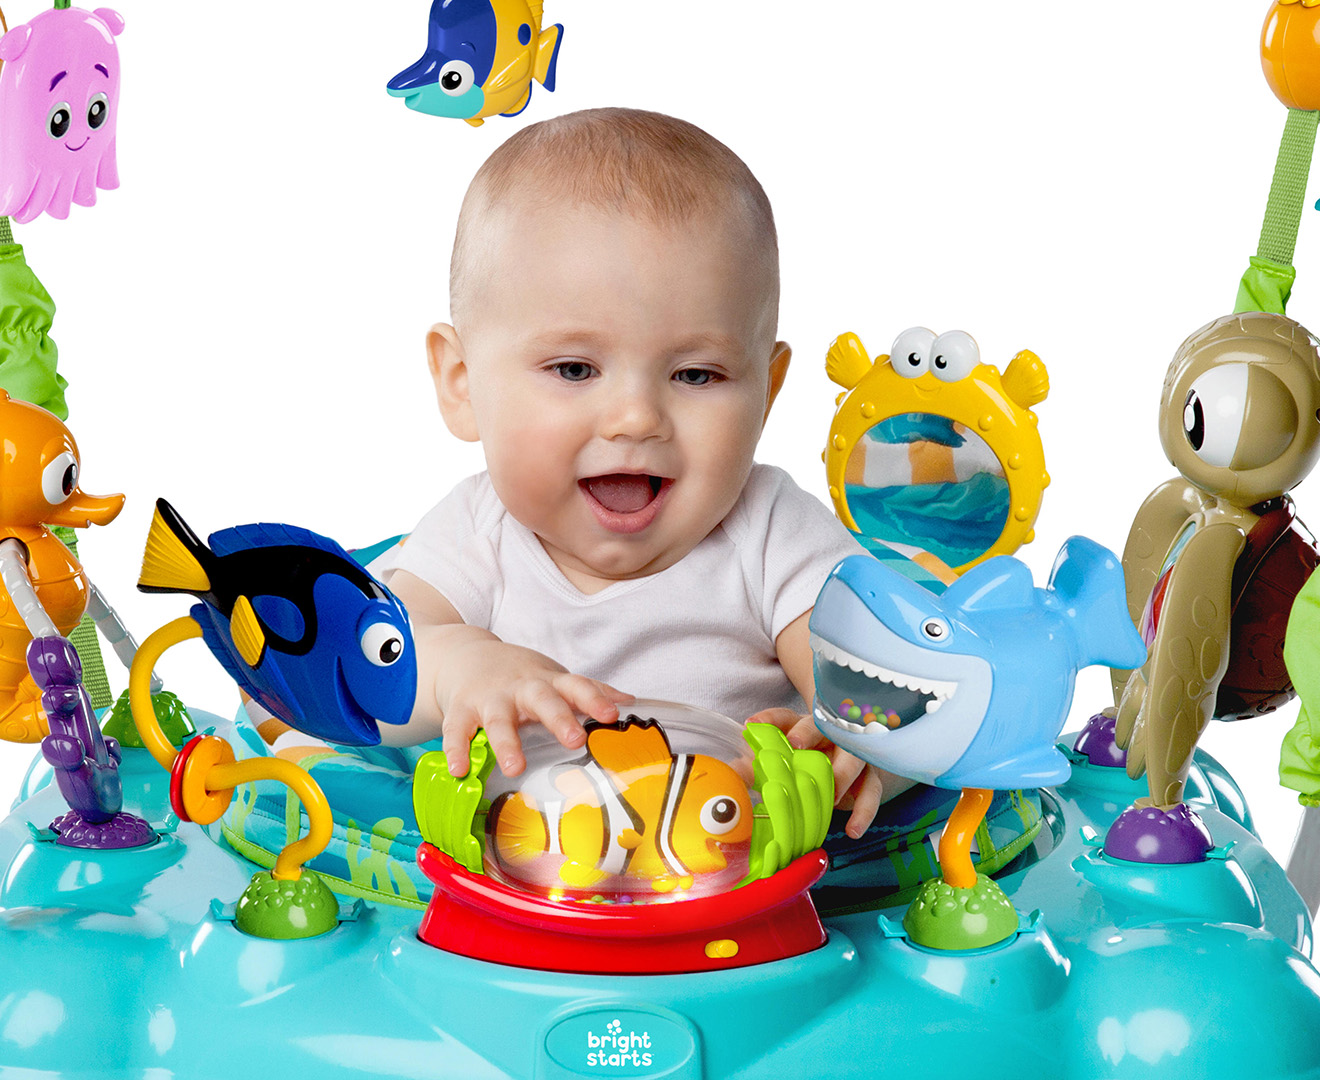 3cb996165e9 Finding Nemo Sea Of Activities Baby/Infant Bouncer/Jumper Rocking  Chair/Music/Toy